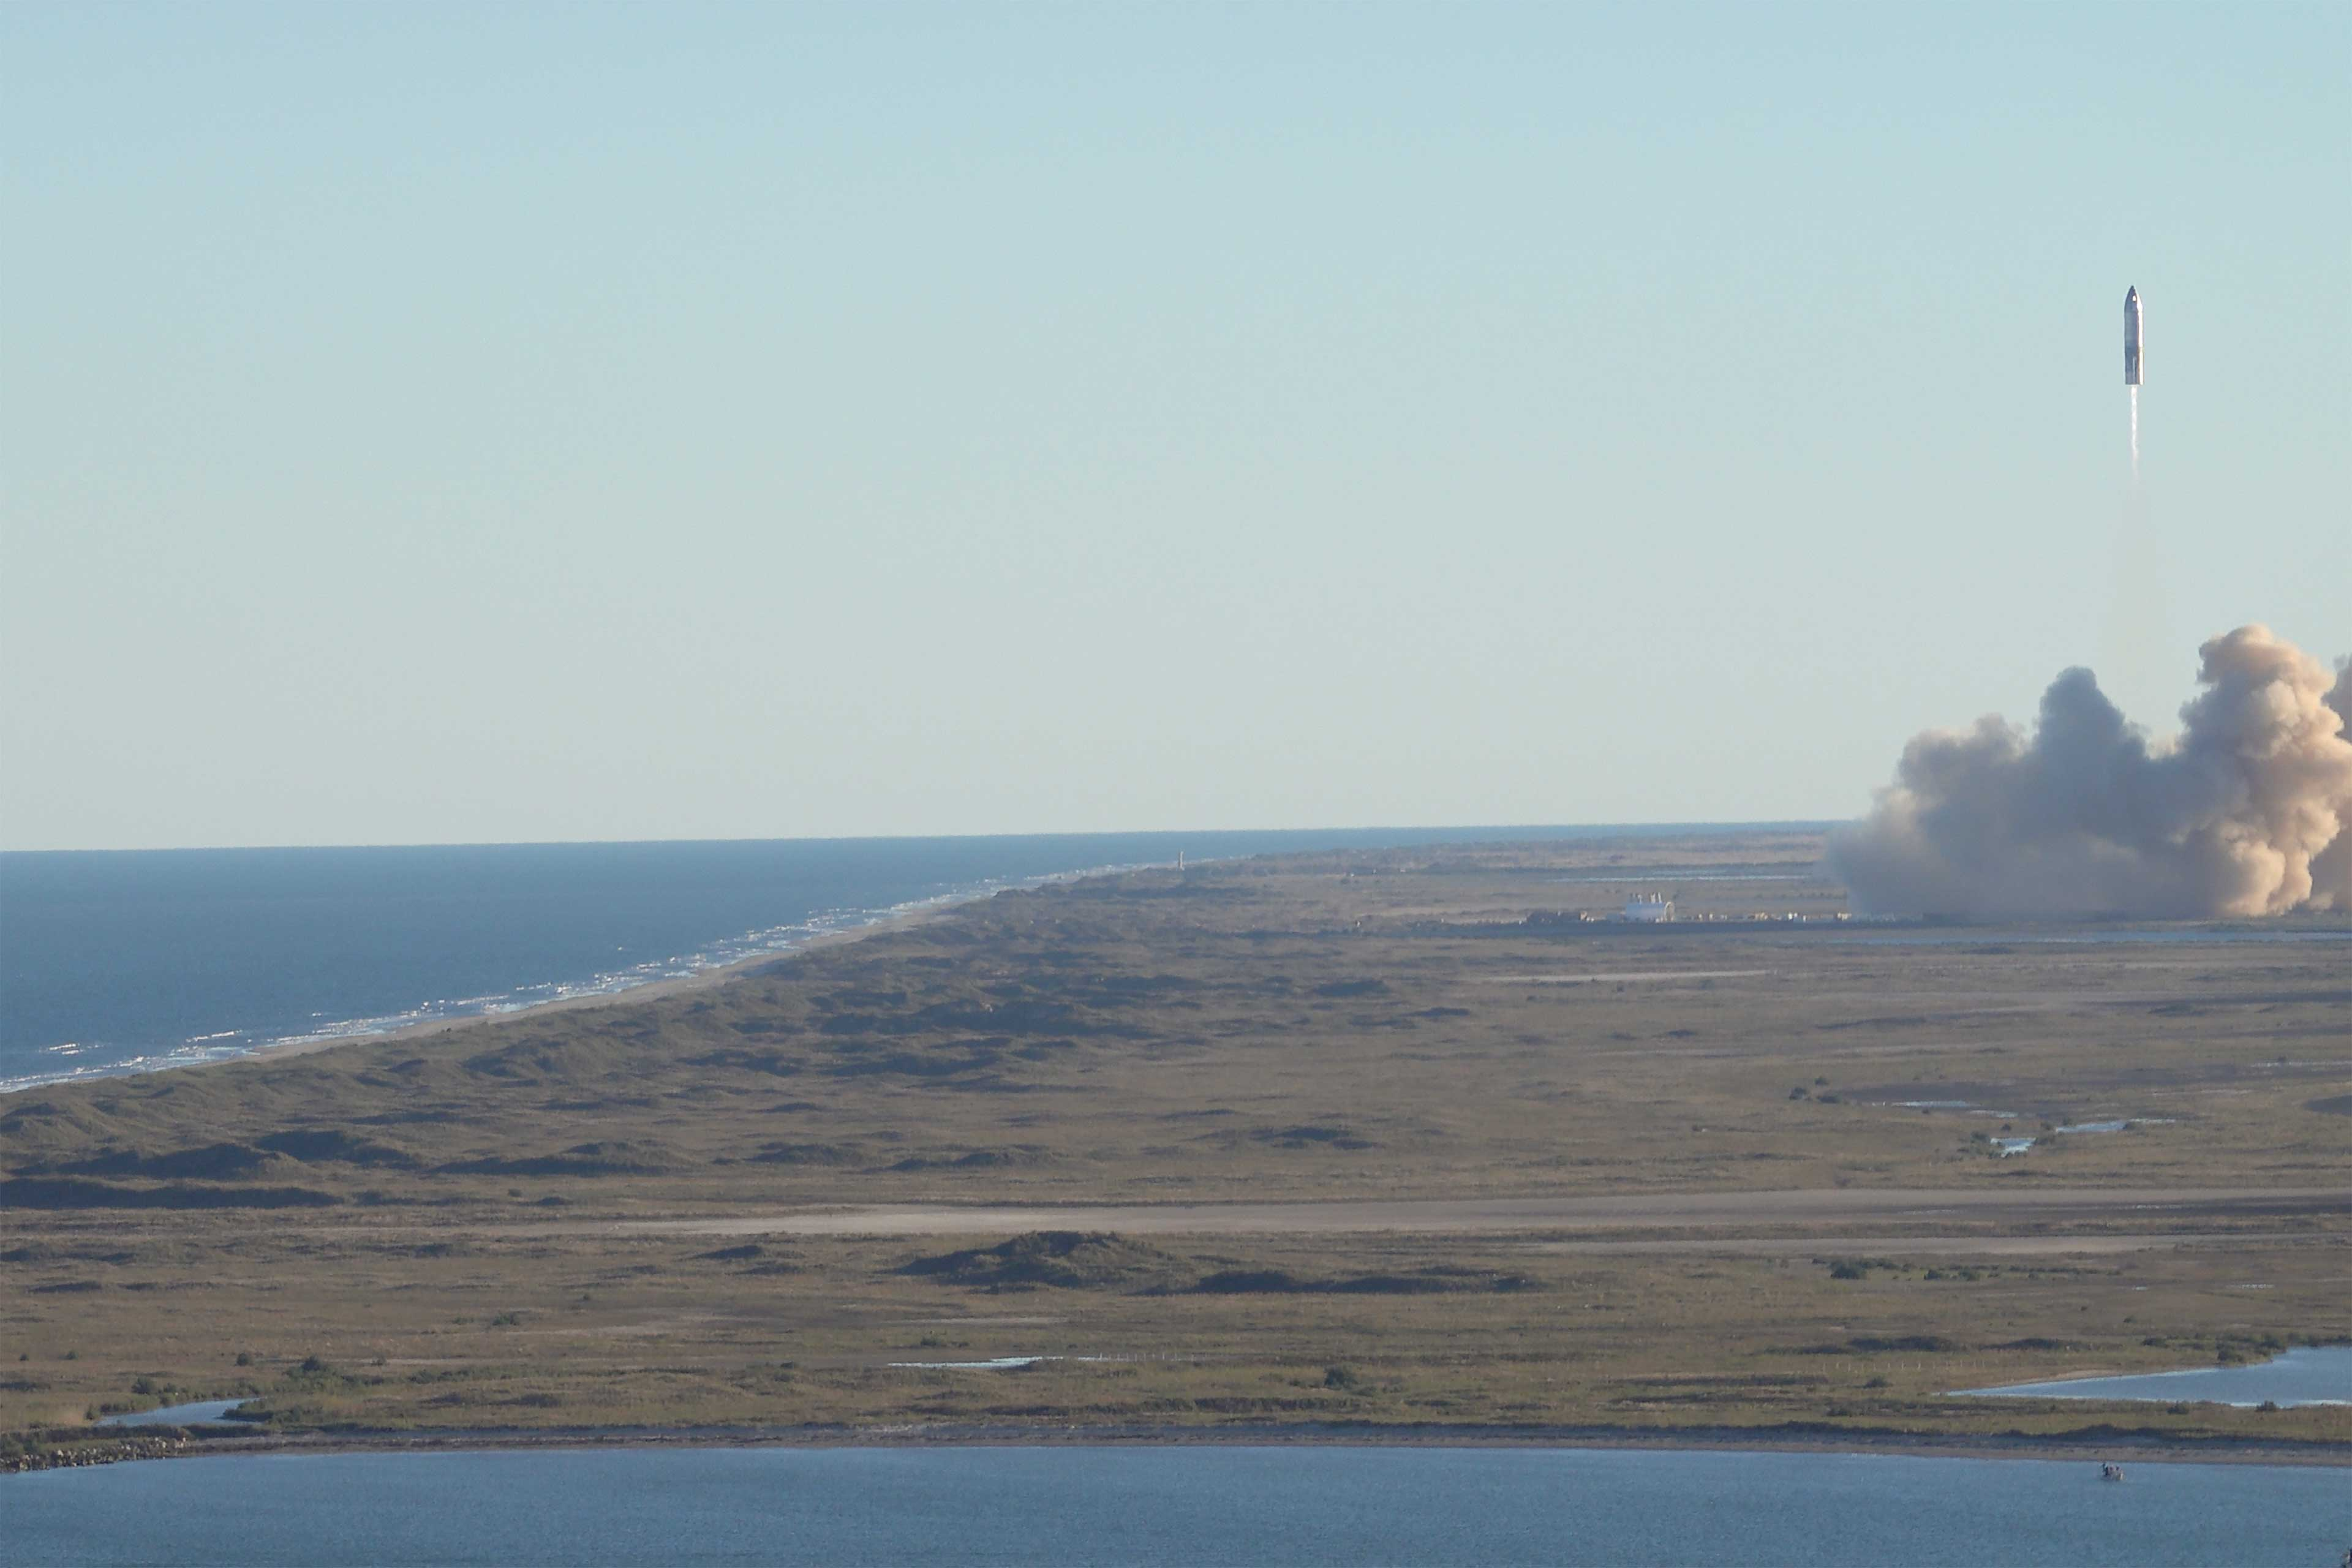 Check out the view of the SpaceX launch pad from the balcony!